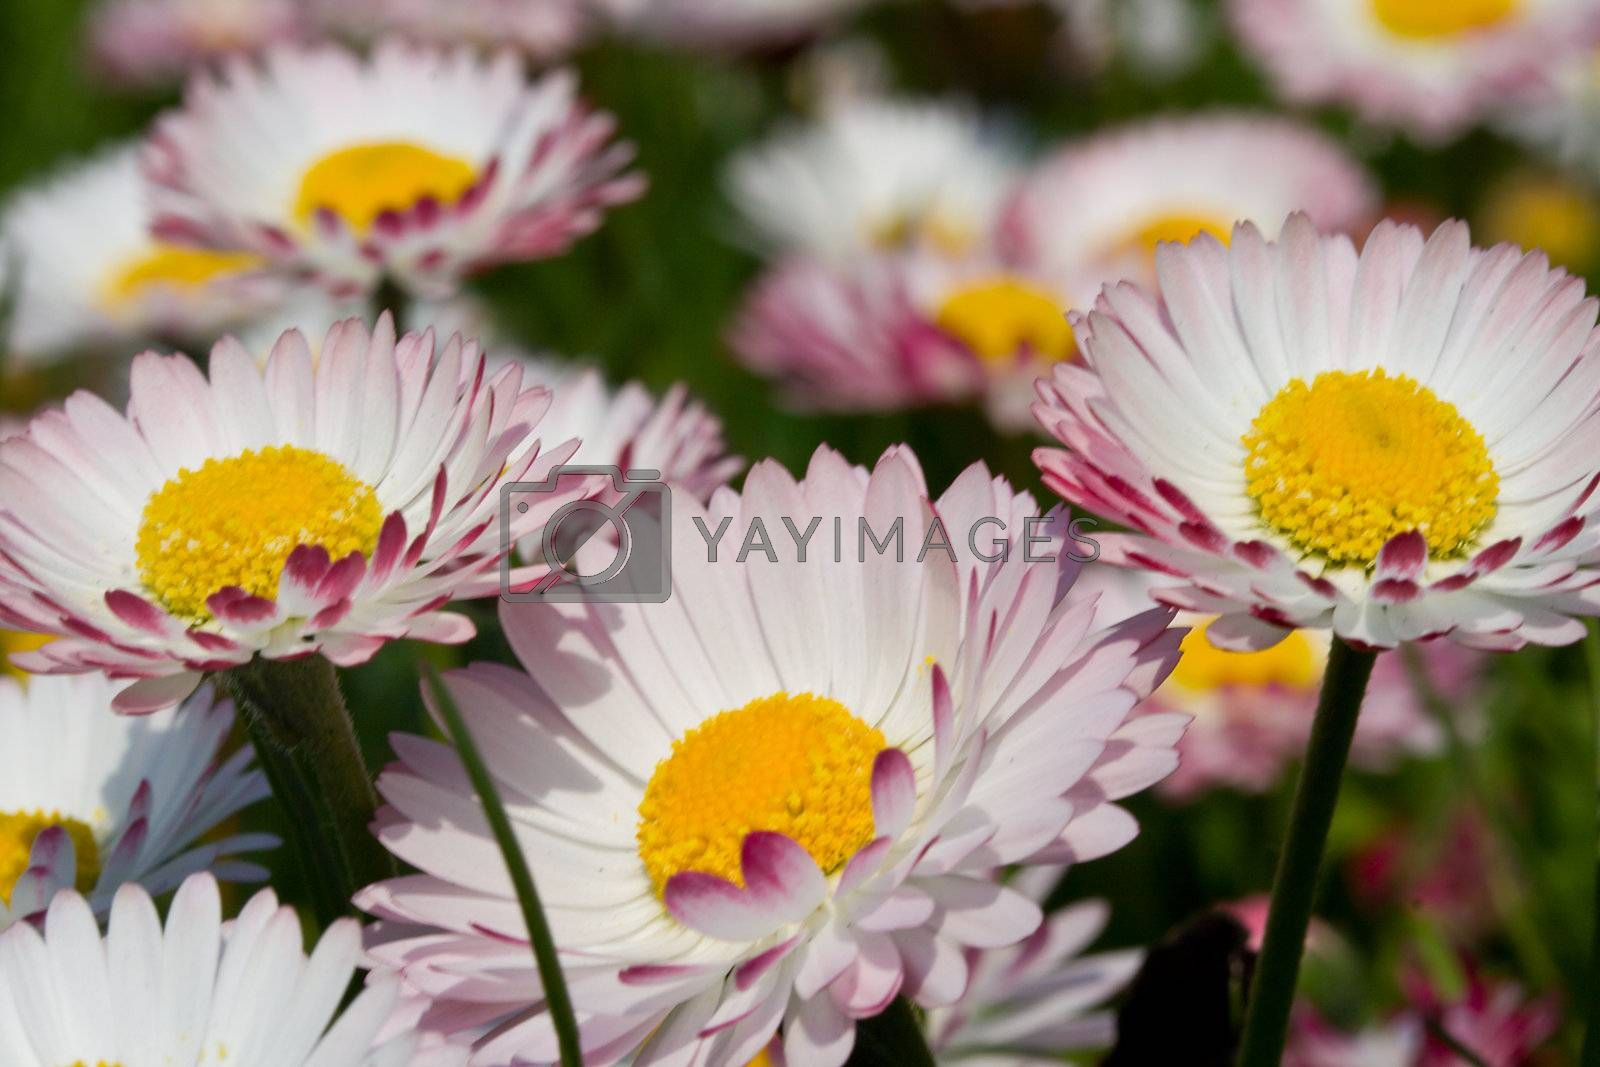 Royalty free image of close-up meadow with daisies by Alekcey